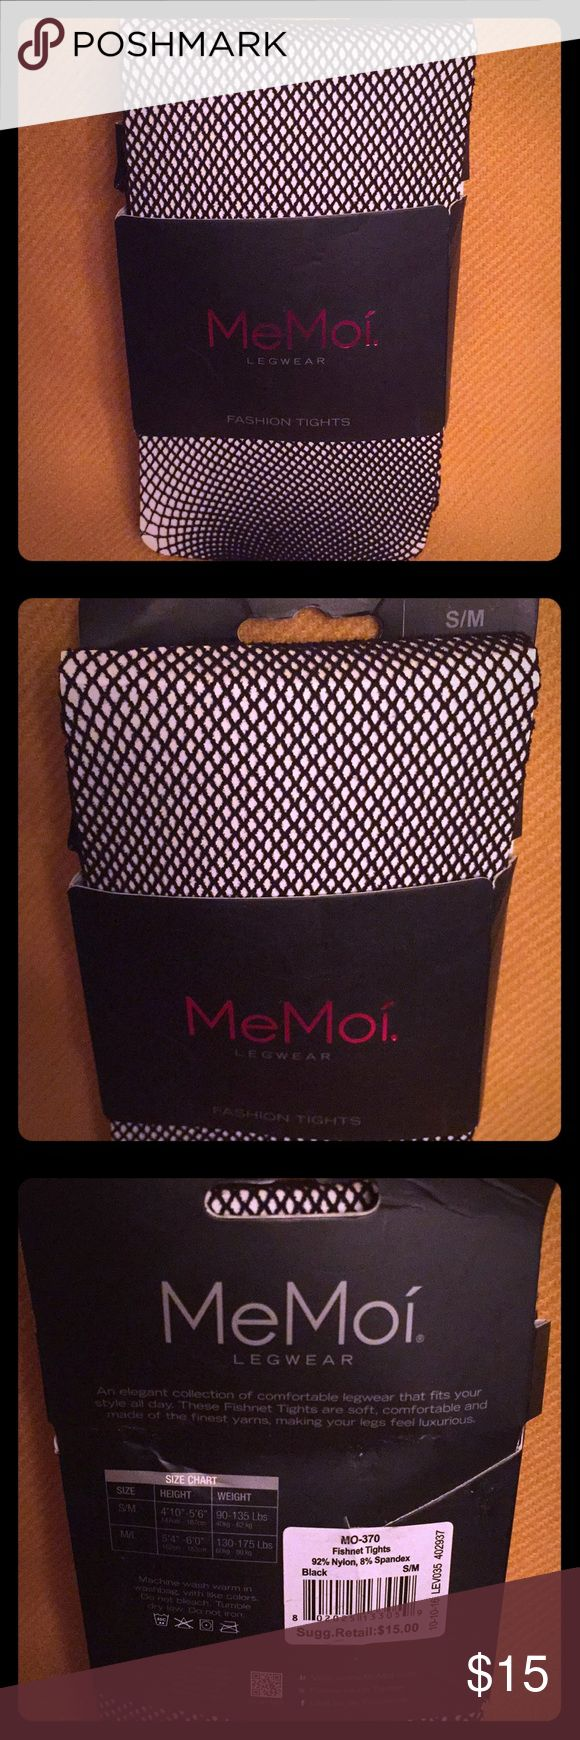 "🆕 MeMoi Black Fishnet Tights Always in Vogue! Authentic MeMoi Black Fishnet Tights. S/M: 4'10""-5'6""; 90-135 lbs. Stylish. Soft. Comfortable. 92% Nylon/8% Spandex. Brand New still in Original Packaging. Excellent Condition. No Trades. See Other Cool Legwear in My Closet.👌🏽 MeMoi Accessories Hosiery & Socks"